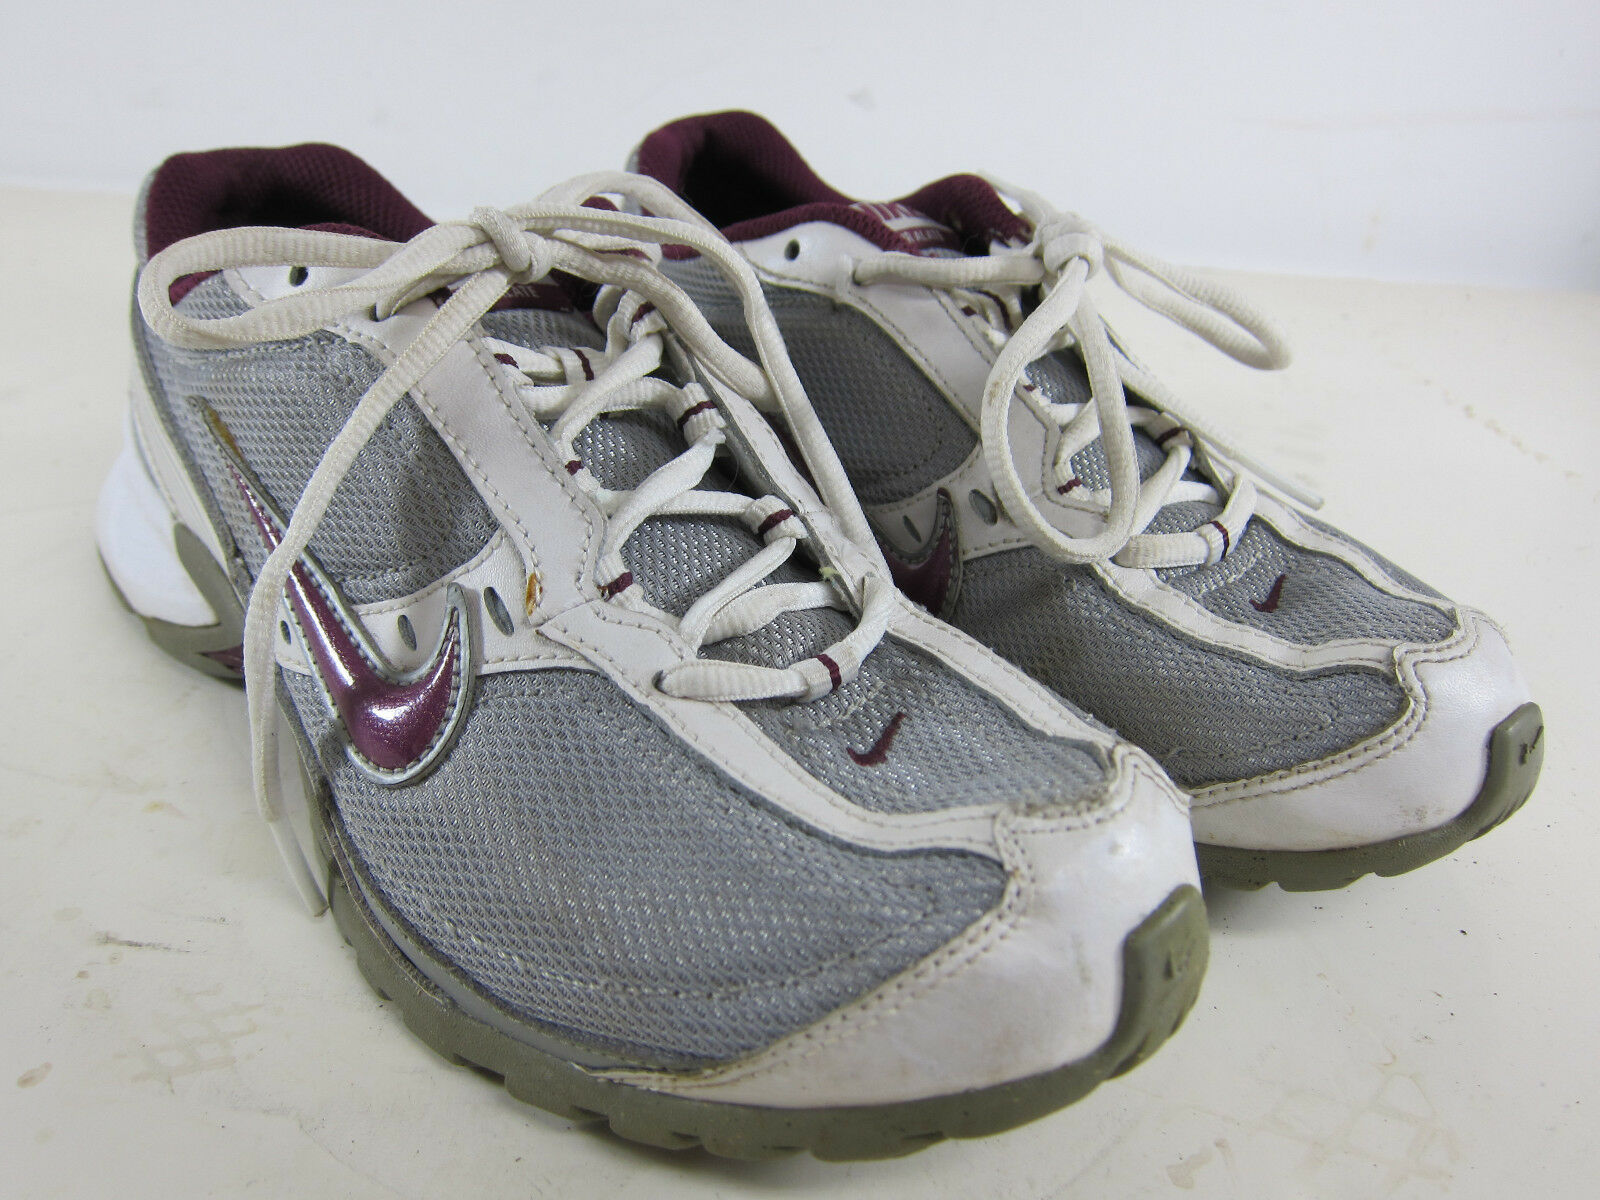 nike air alate femme taille cours 8 Violet Argent cours taille formation chaussure est 333763-051 52d1e4